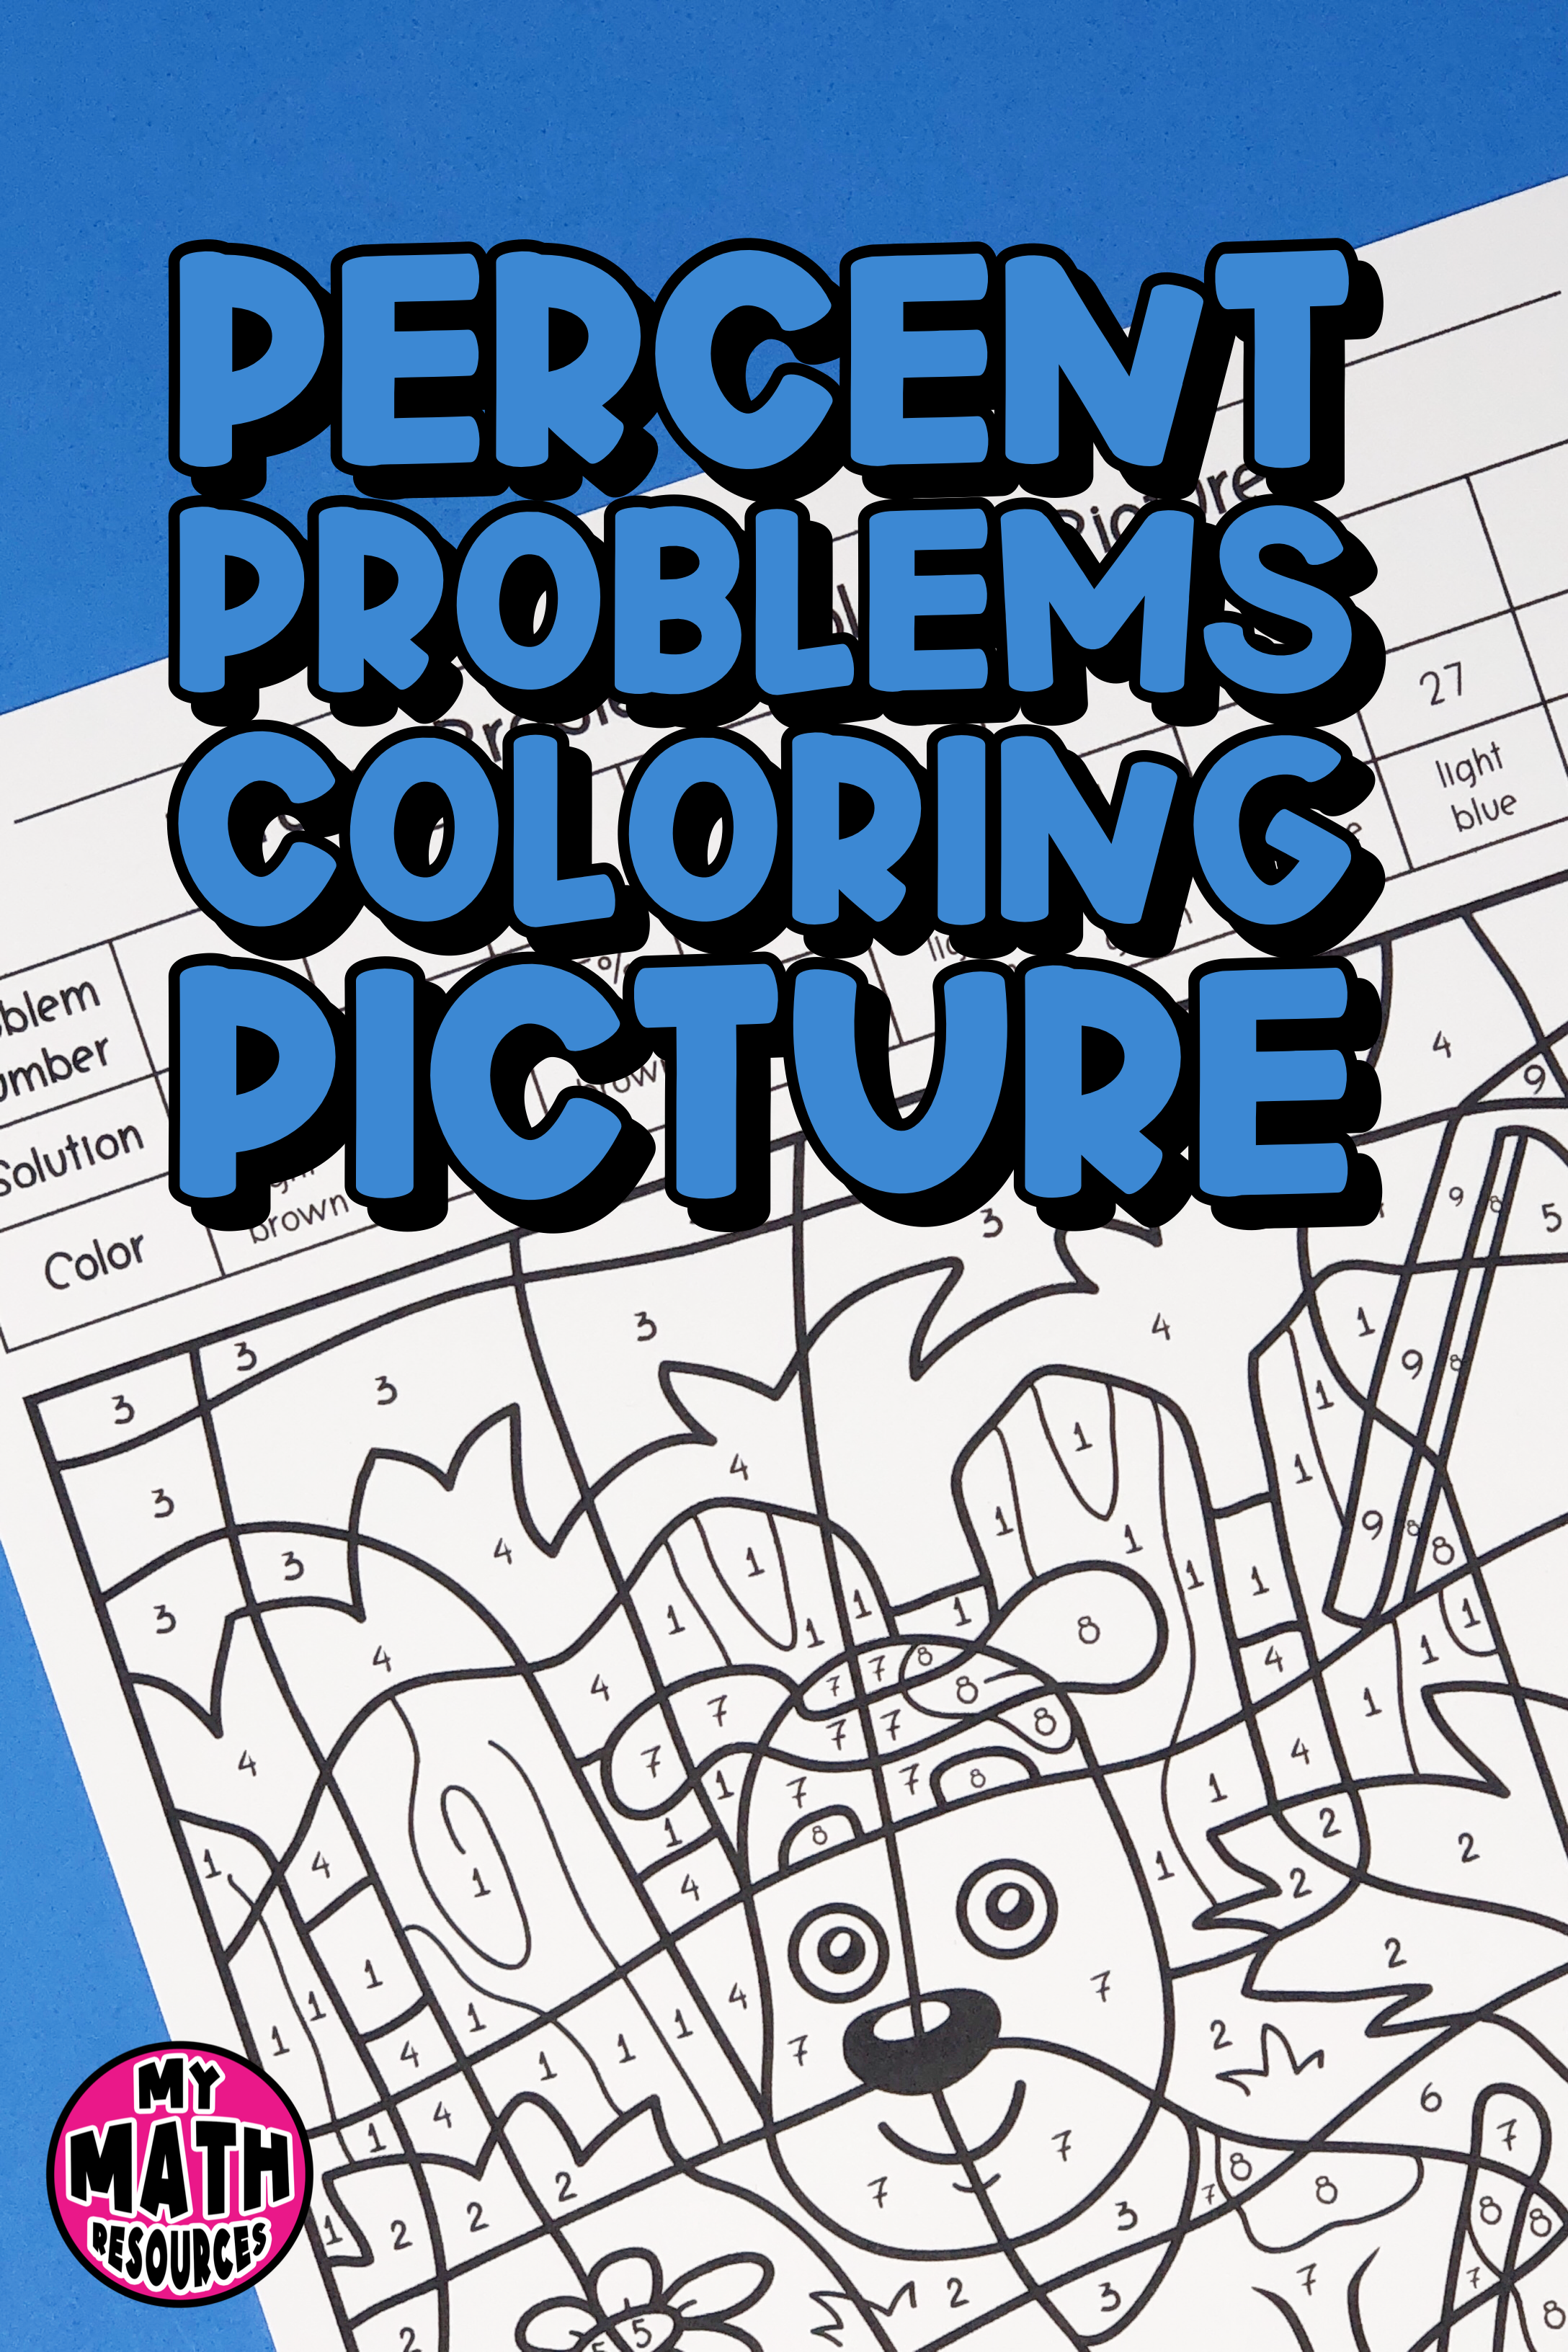 medium resolution of My Math Resources - Percent Problems Coloring Picture Worksheet   Middle  school math teacher